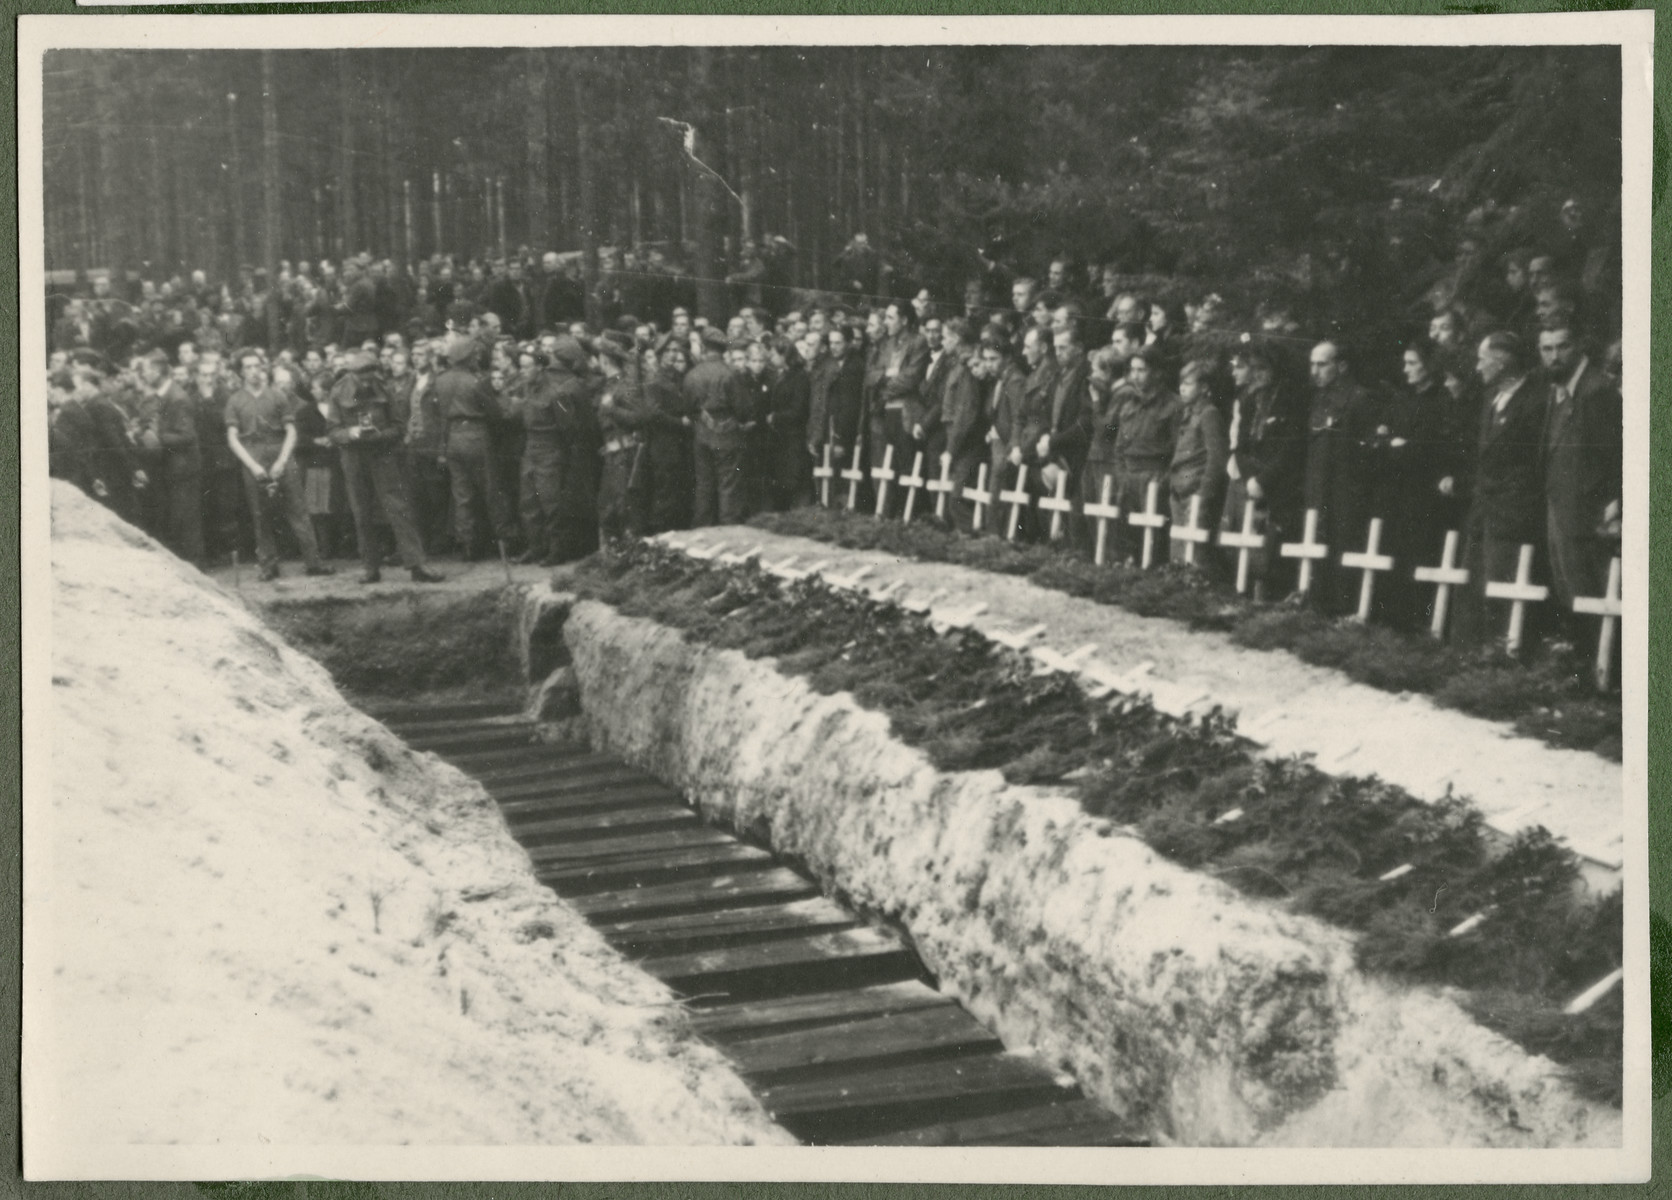 Under the supervision of British troops, German civilians and Nazi officials pay hommage to the graves of 243 slave laborers who were shot by their guards on the railway lines at Lueneberg on the way to the Belsen Camp.